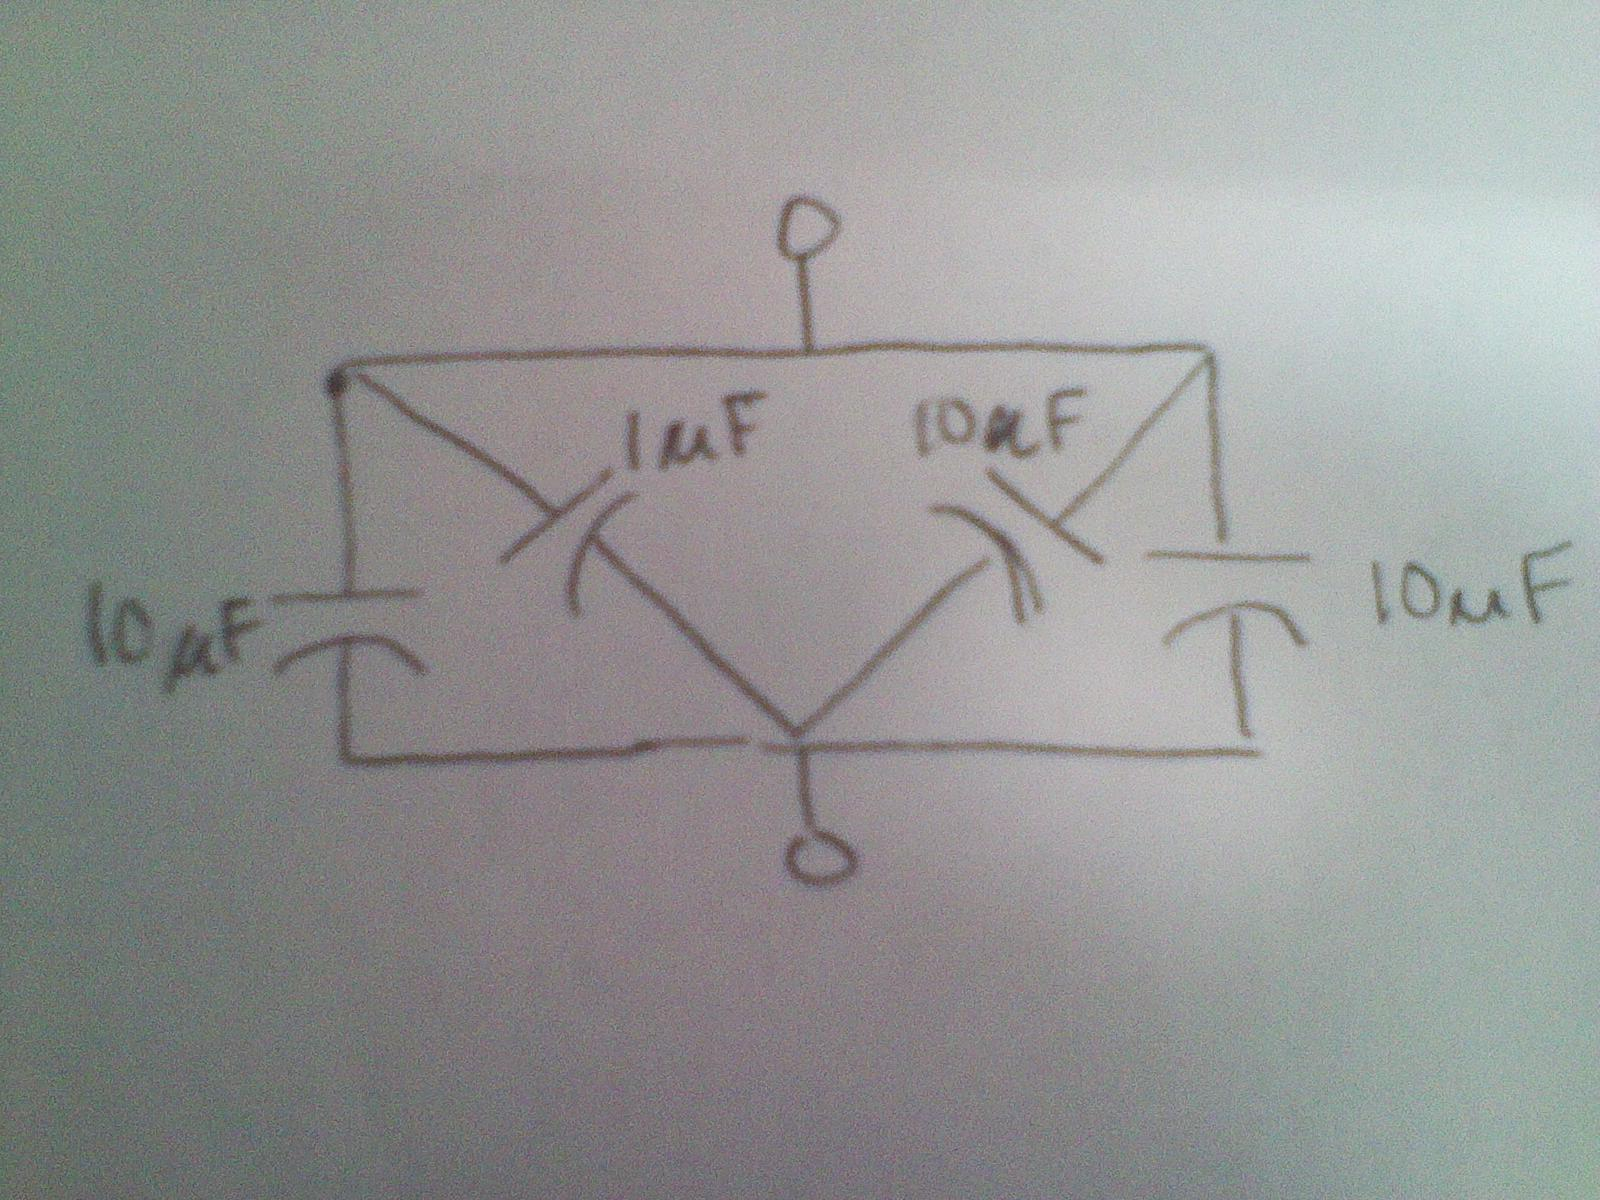 What is the total capacitance in the picture? Plea